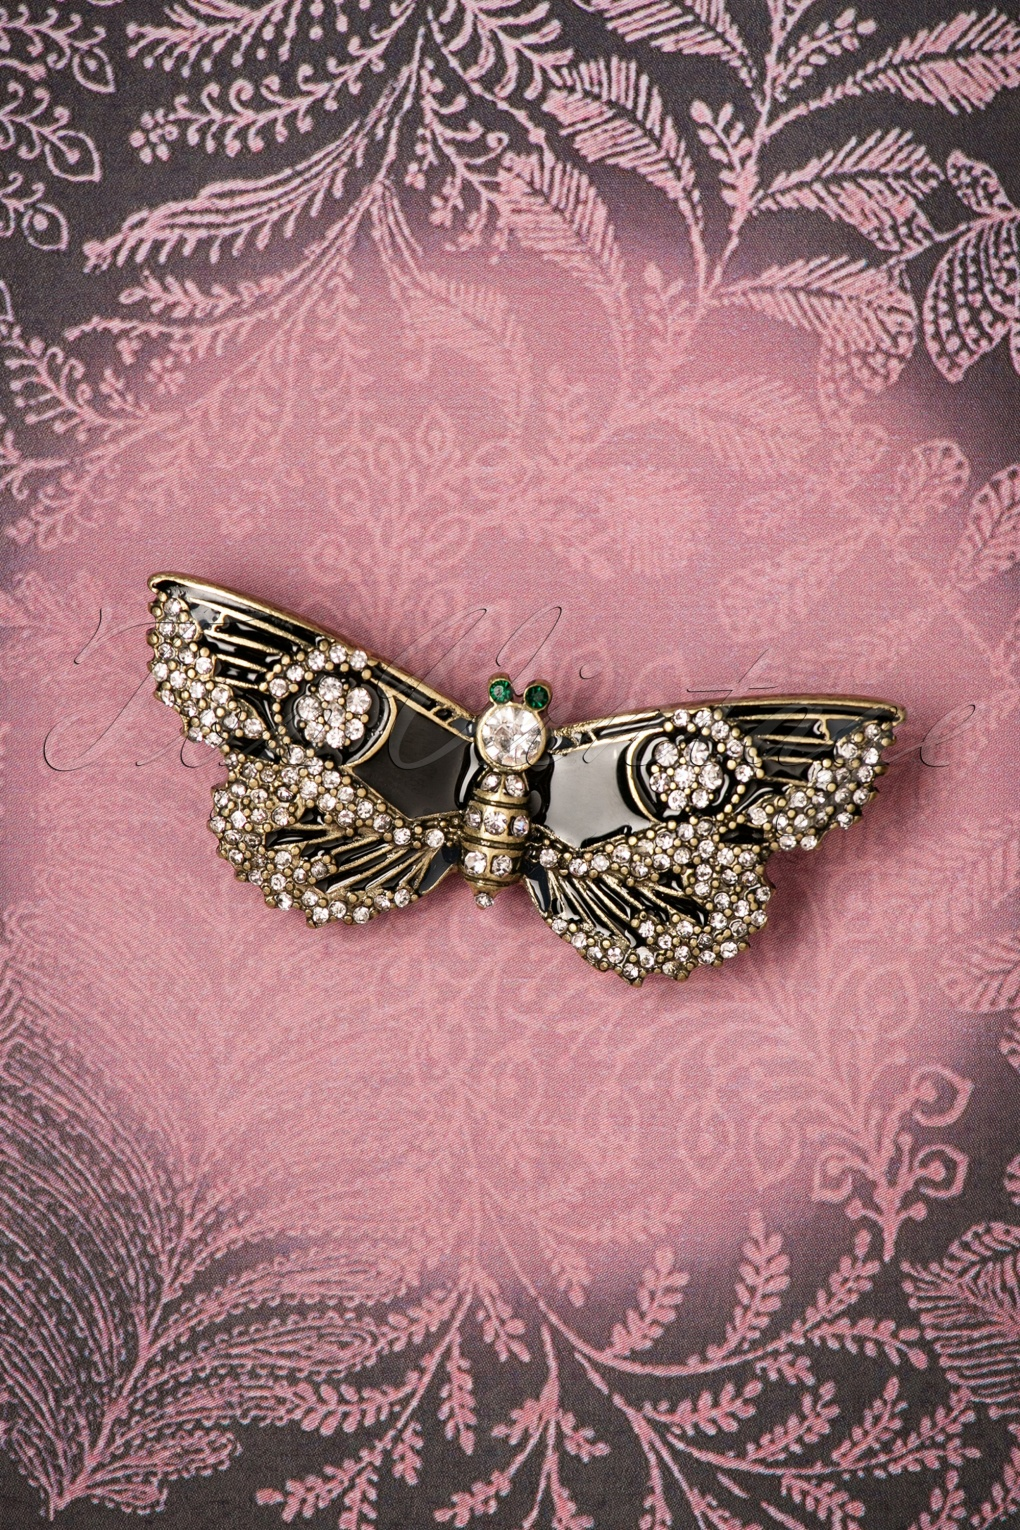 1930s Jewelry | Art Deco Style Jewelry 30s Jet Butterfly Brooch in Black and Gold £19.70 AT vintagedancer.com